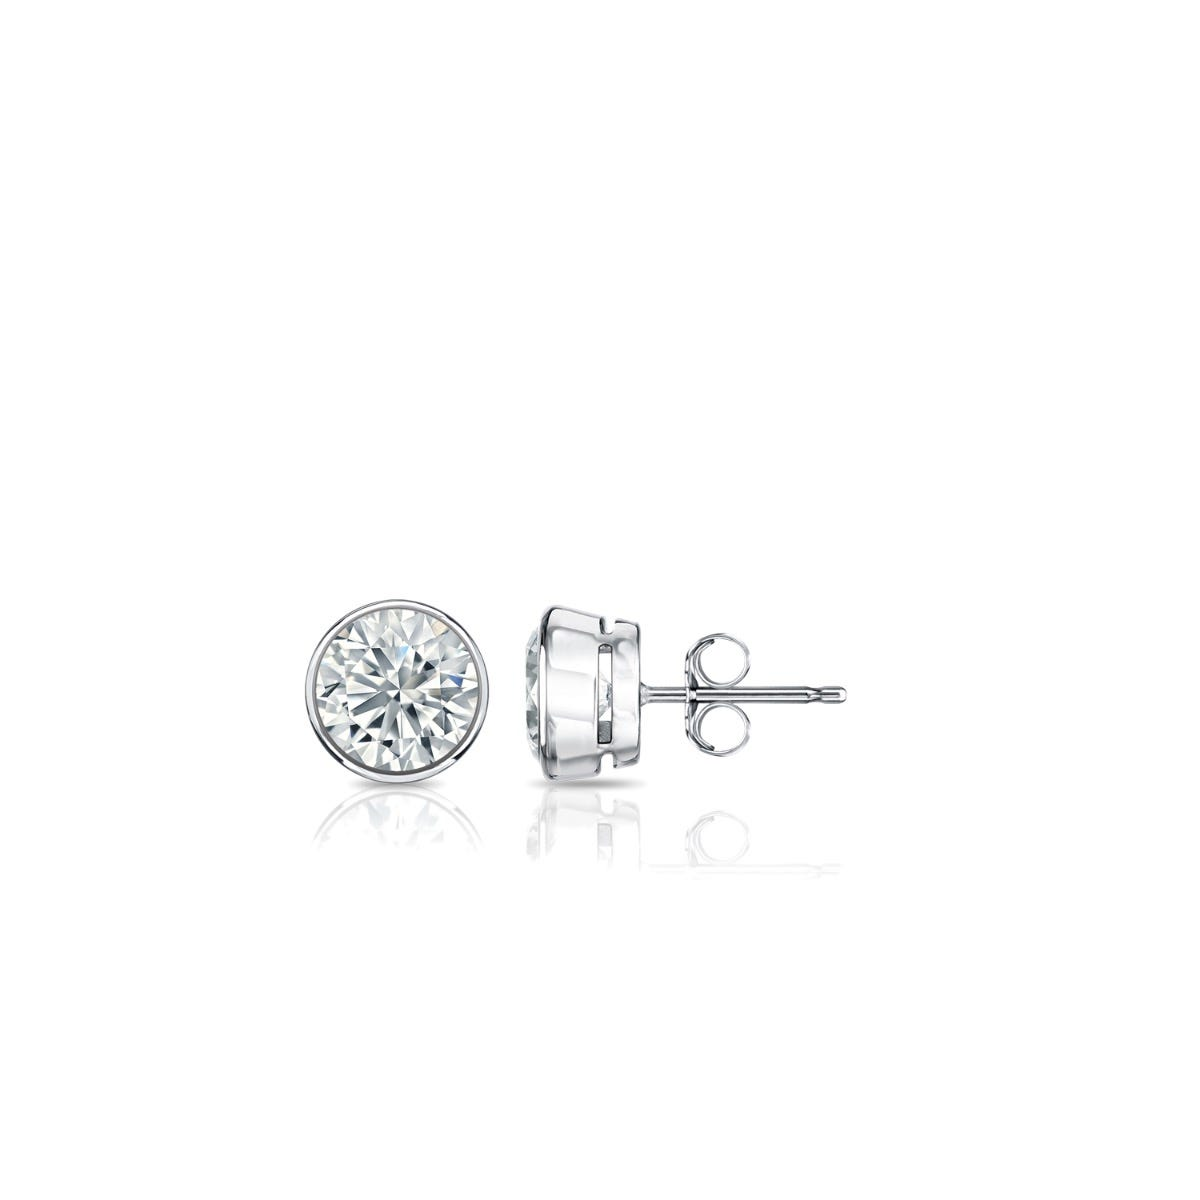 Diamond Round Bezel-Set 1/5ctw. Solitaire Stud (IJ-I2) Earrings in 10K White Gold